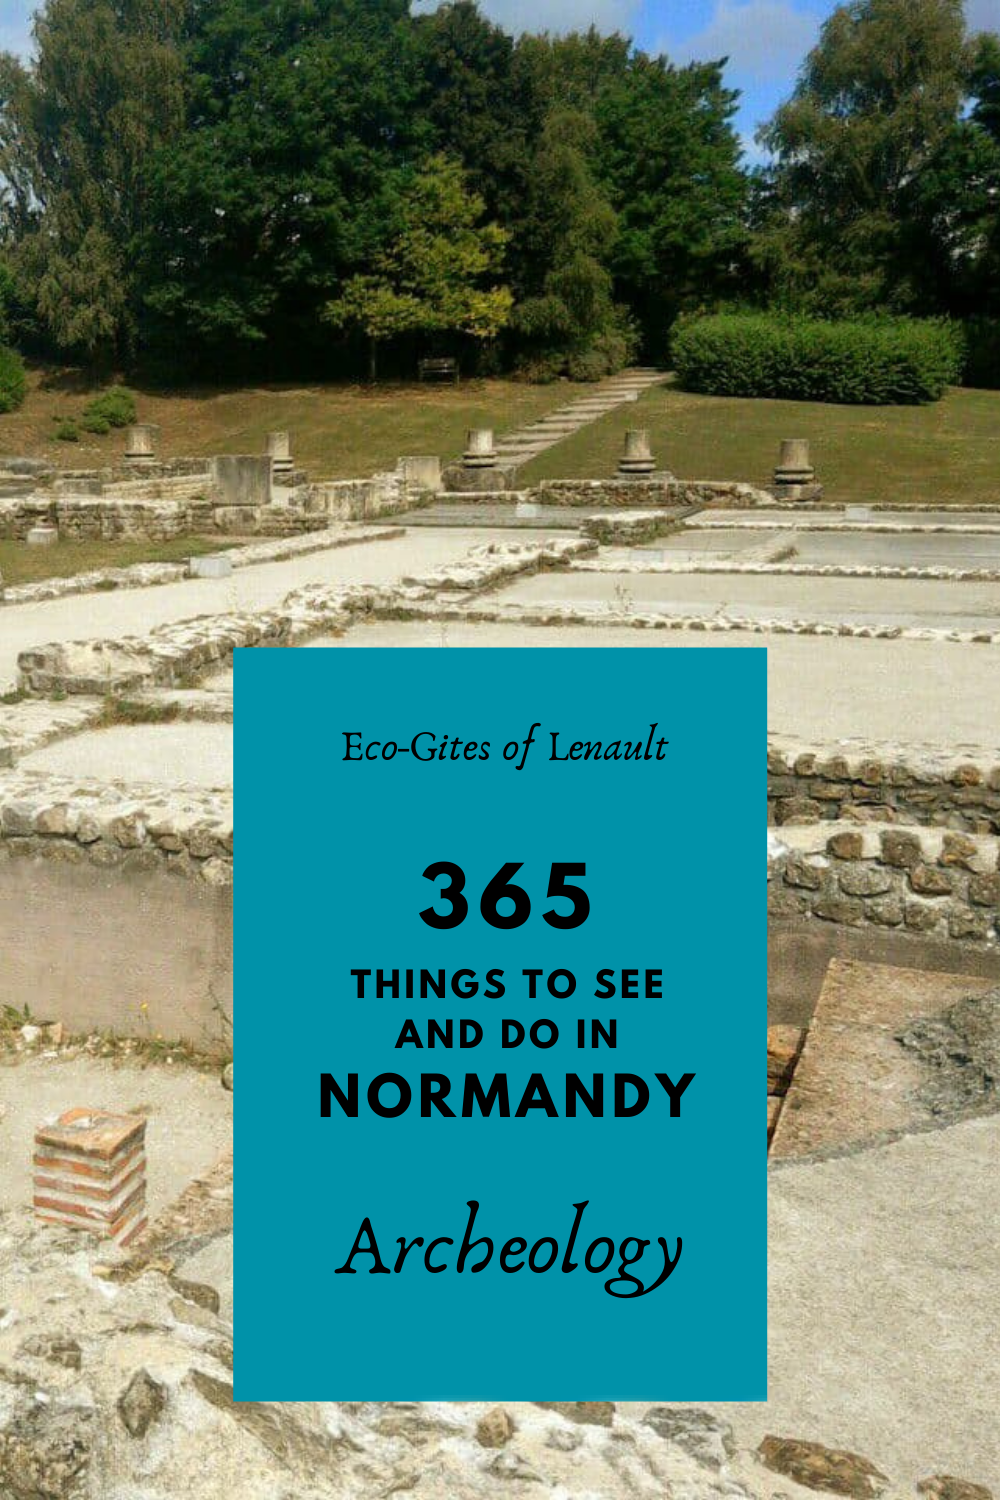 Archeological sites in Normandy